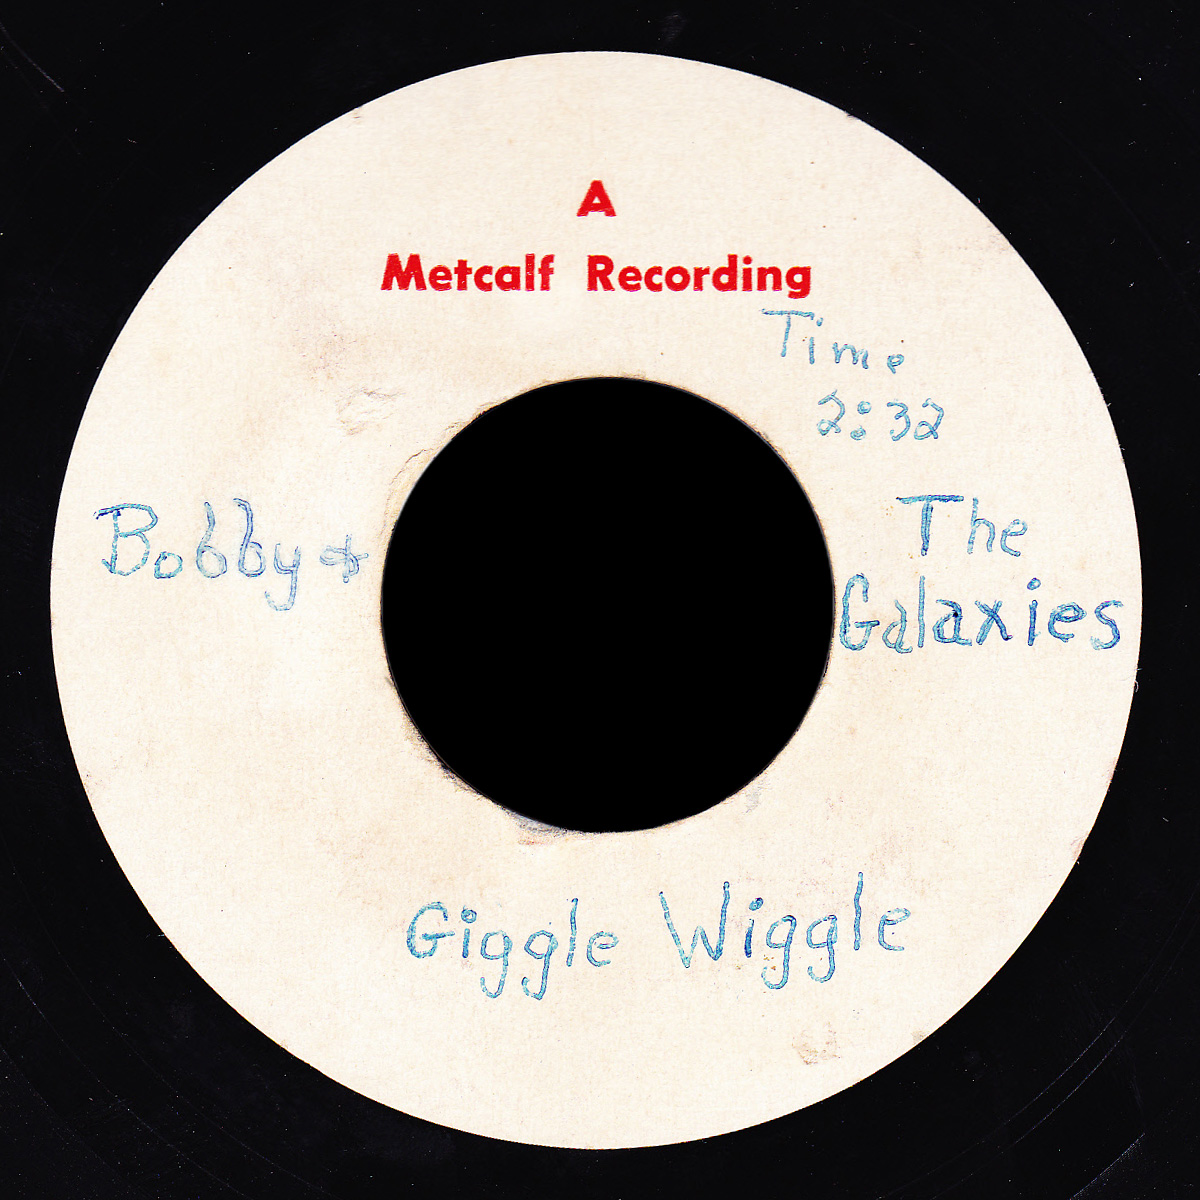 Bobby & the Galaxies Metcalf Recording demo Giggle Wiggle